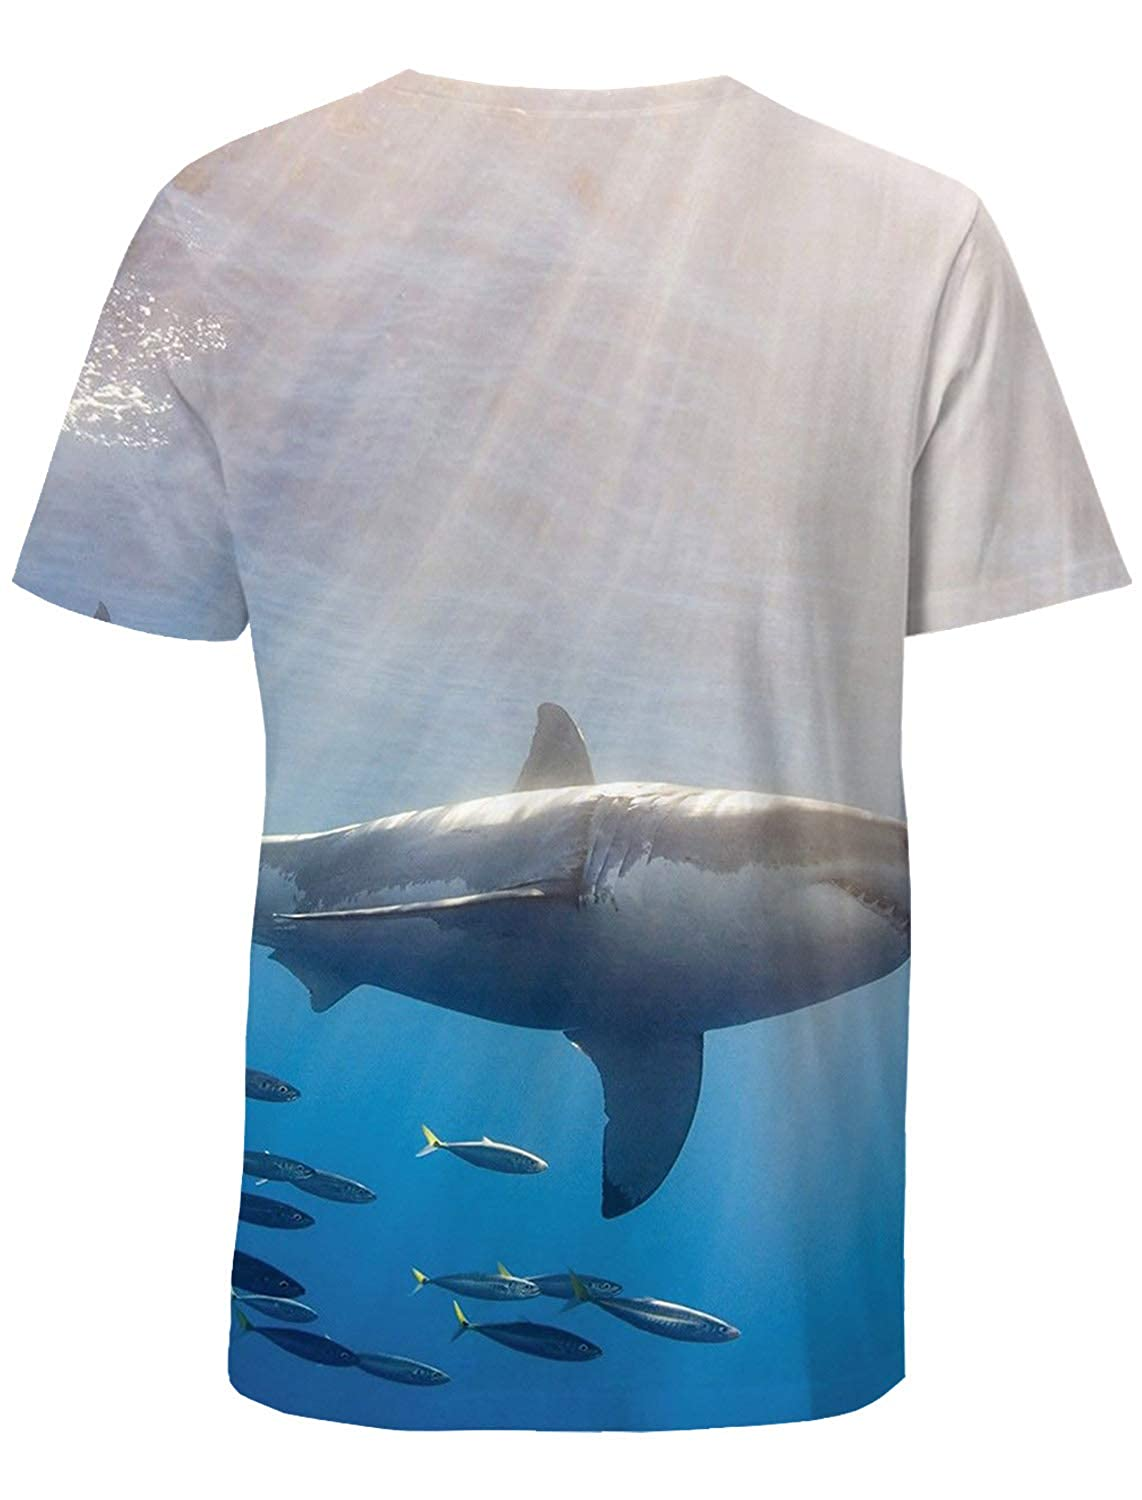 Casual 3D Printed T-Shirt Polyester Short Sleeve Tops for Men